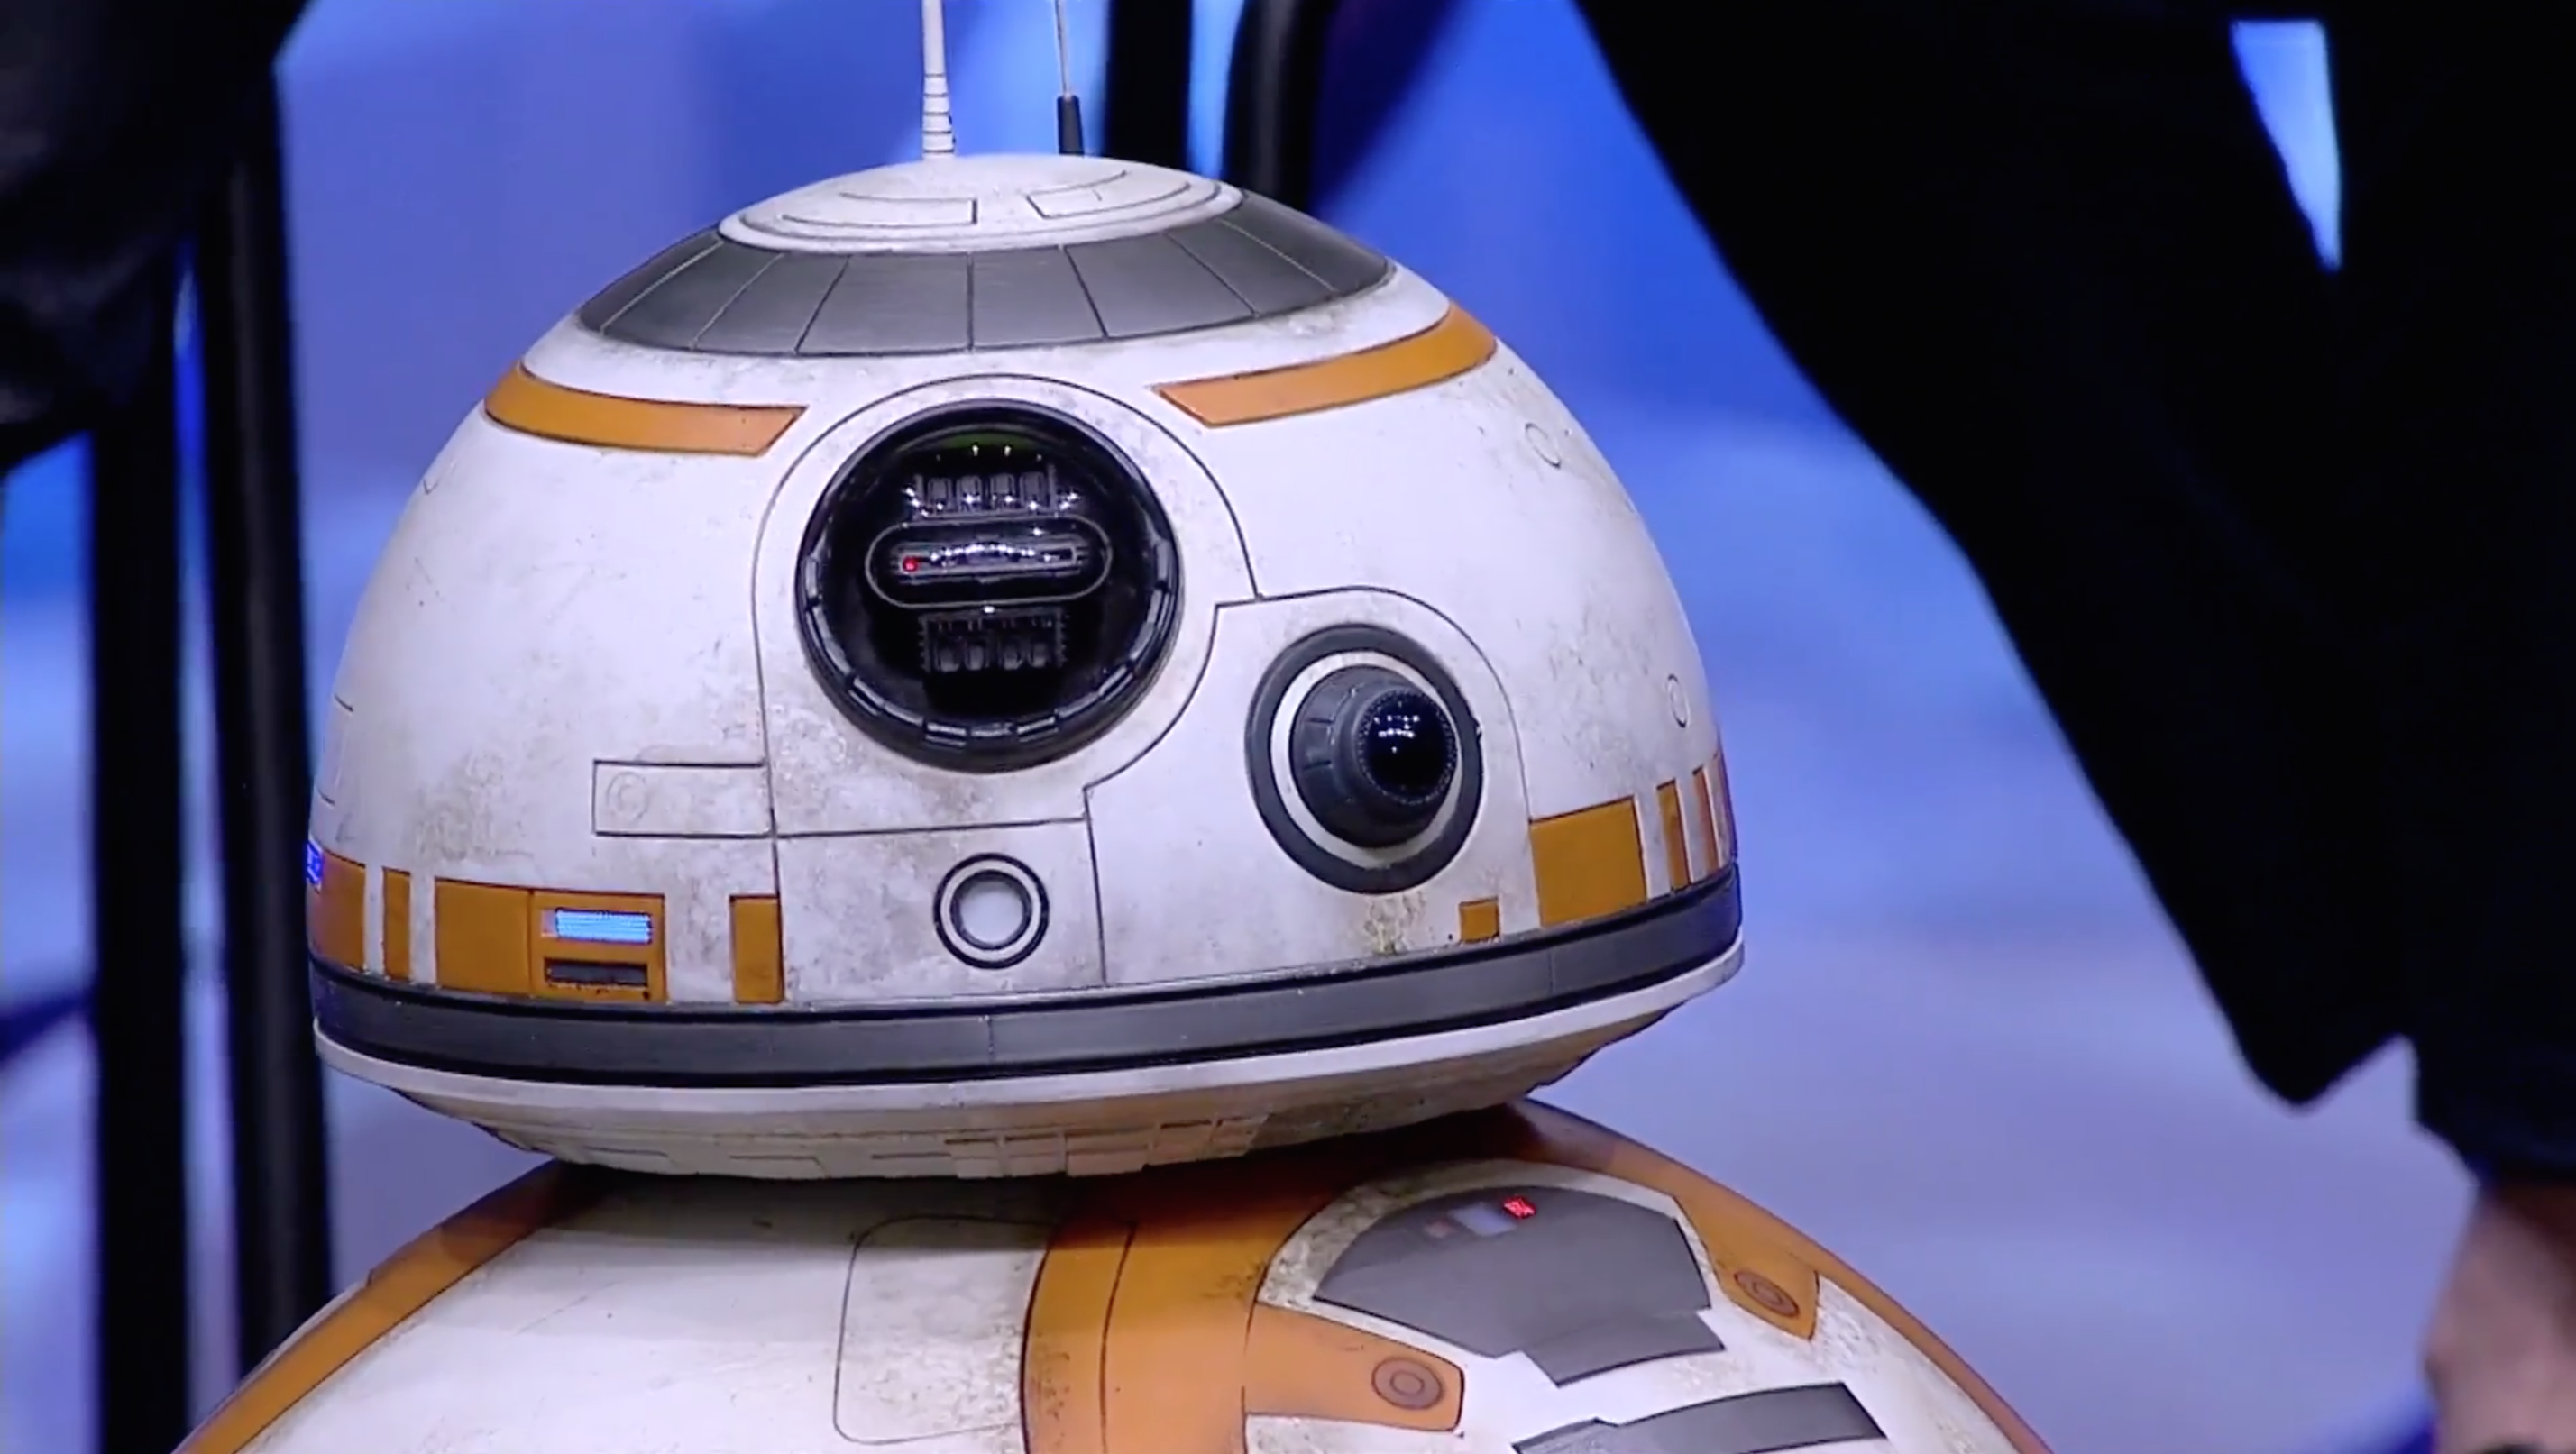 Working droids, new heroes and Han Solo images prove that Star Wars is amazing again